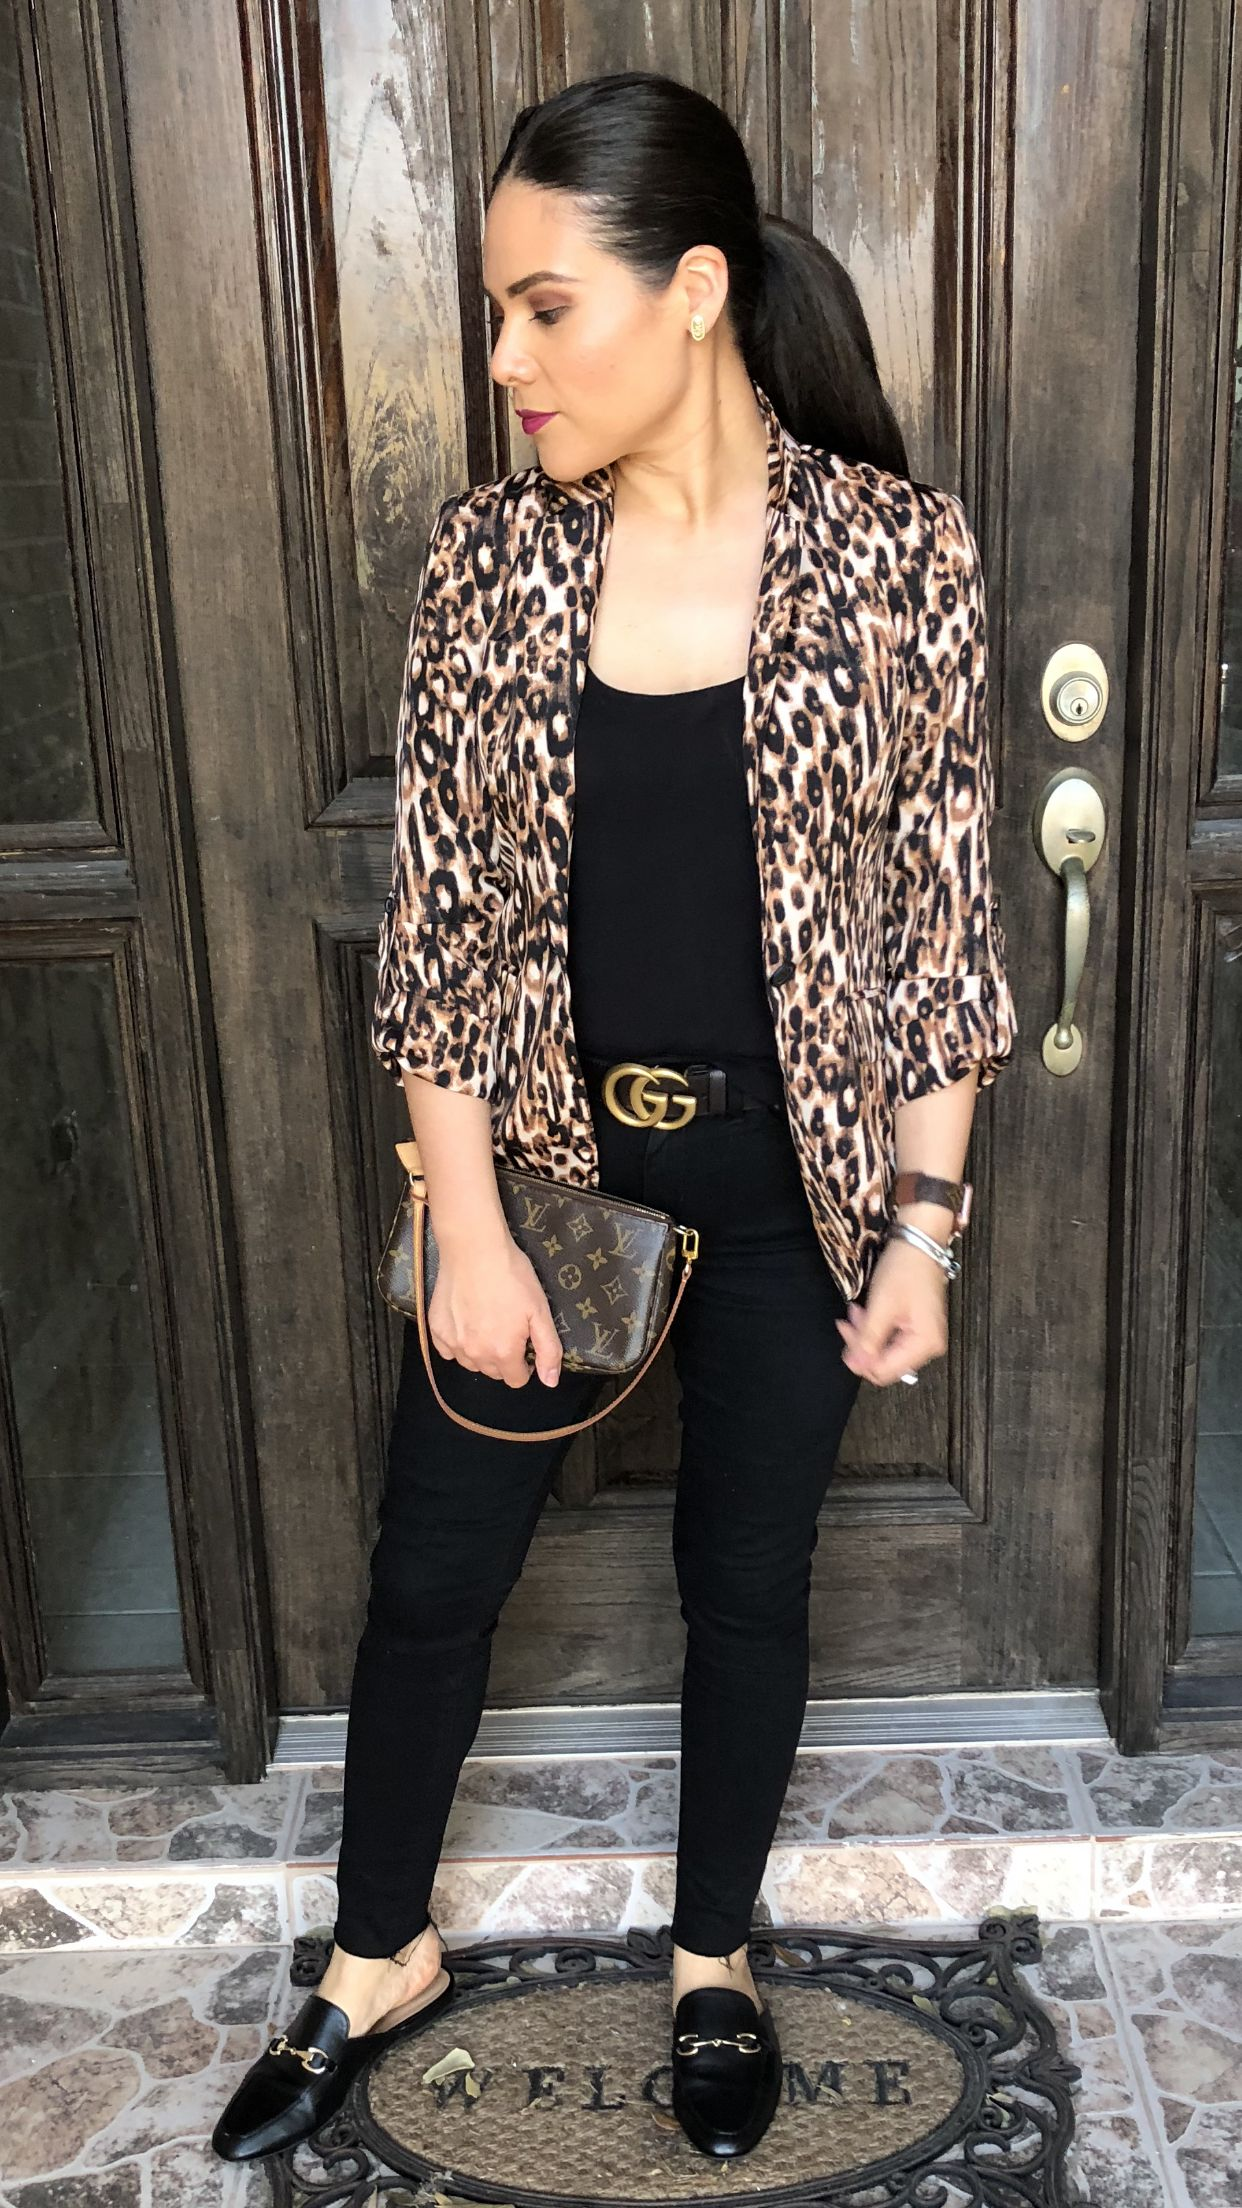 f1136cd2e7ff Fall outfit ideas leopard blazer jacket suit black skinny jeans Gucci belt  mules gold buckle Louis Vuitton monogram canvas bag mommy outfit style  Kendra ...